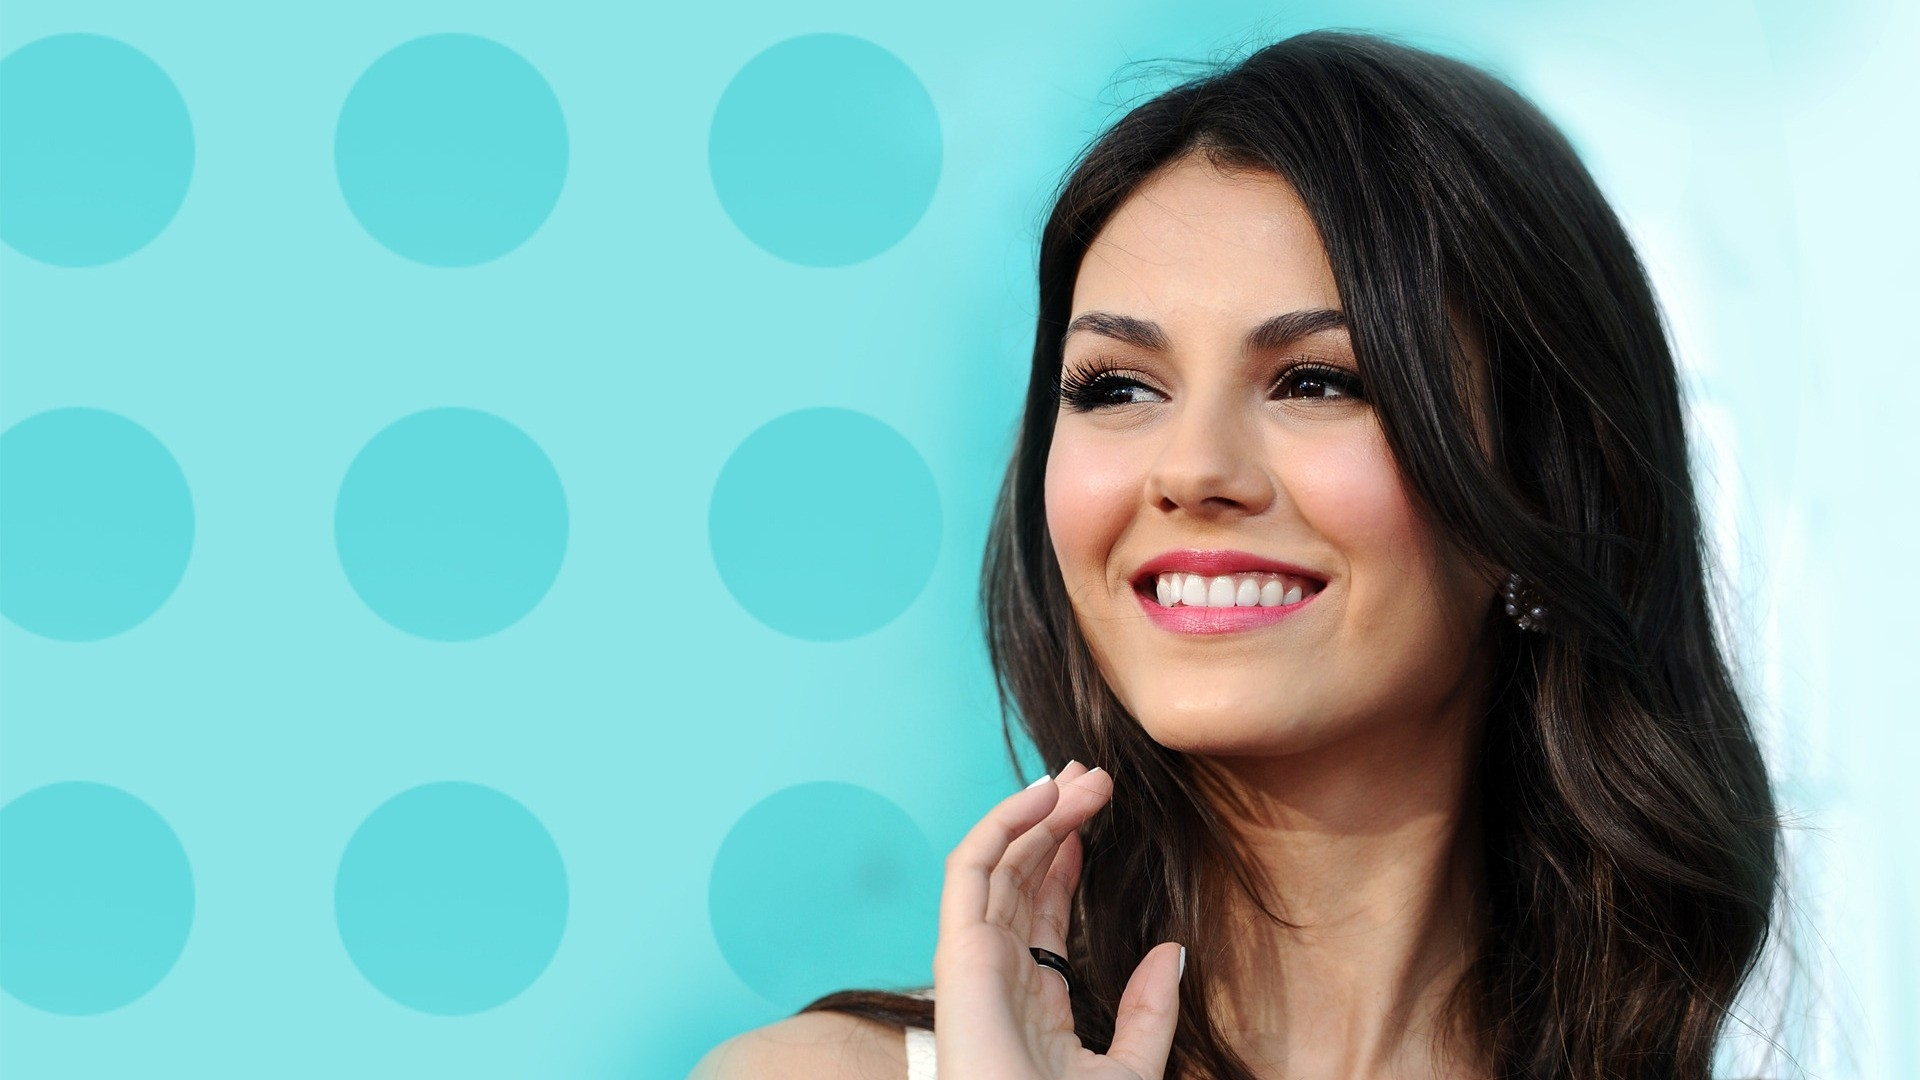 HD Wallpapers HD Wallpapers Victoria Justice Smile HD Wallpaper 1920x1080